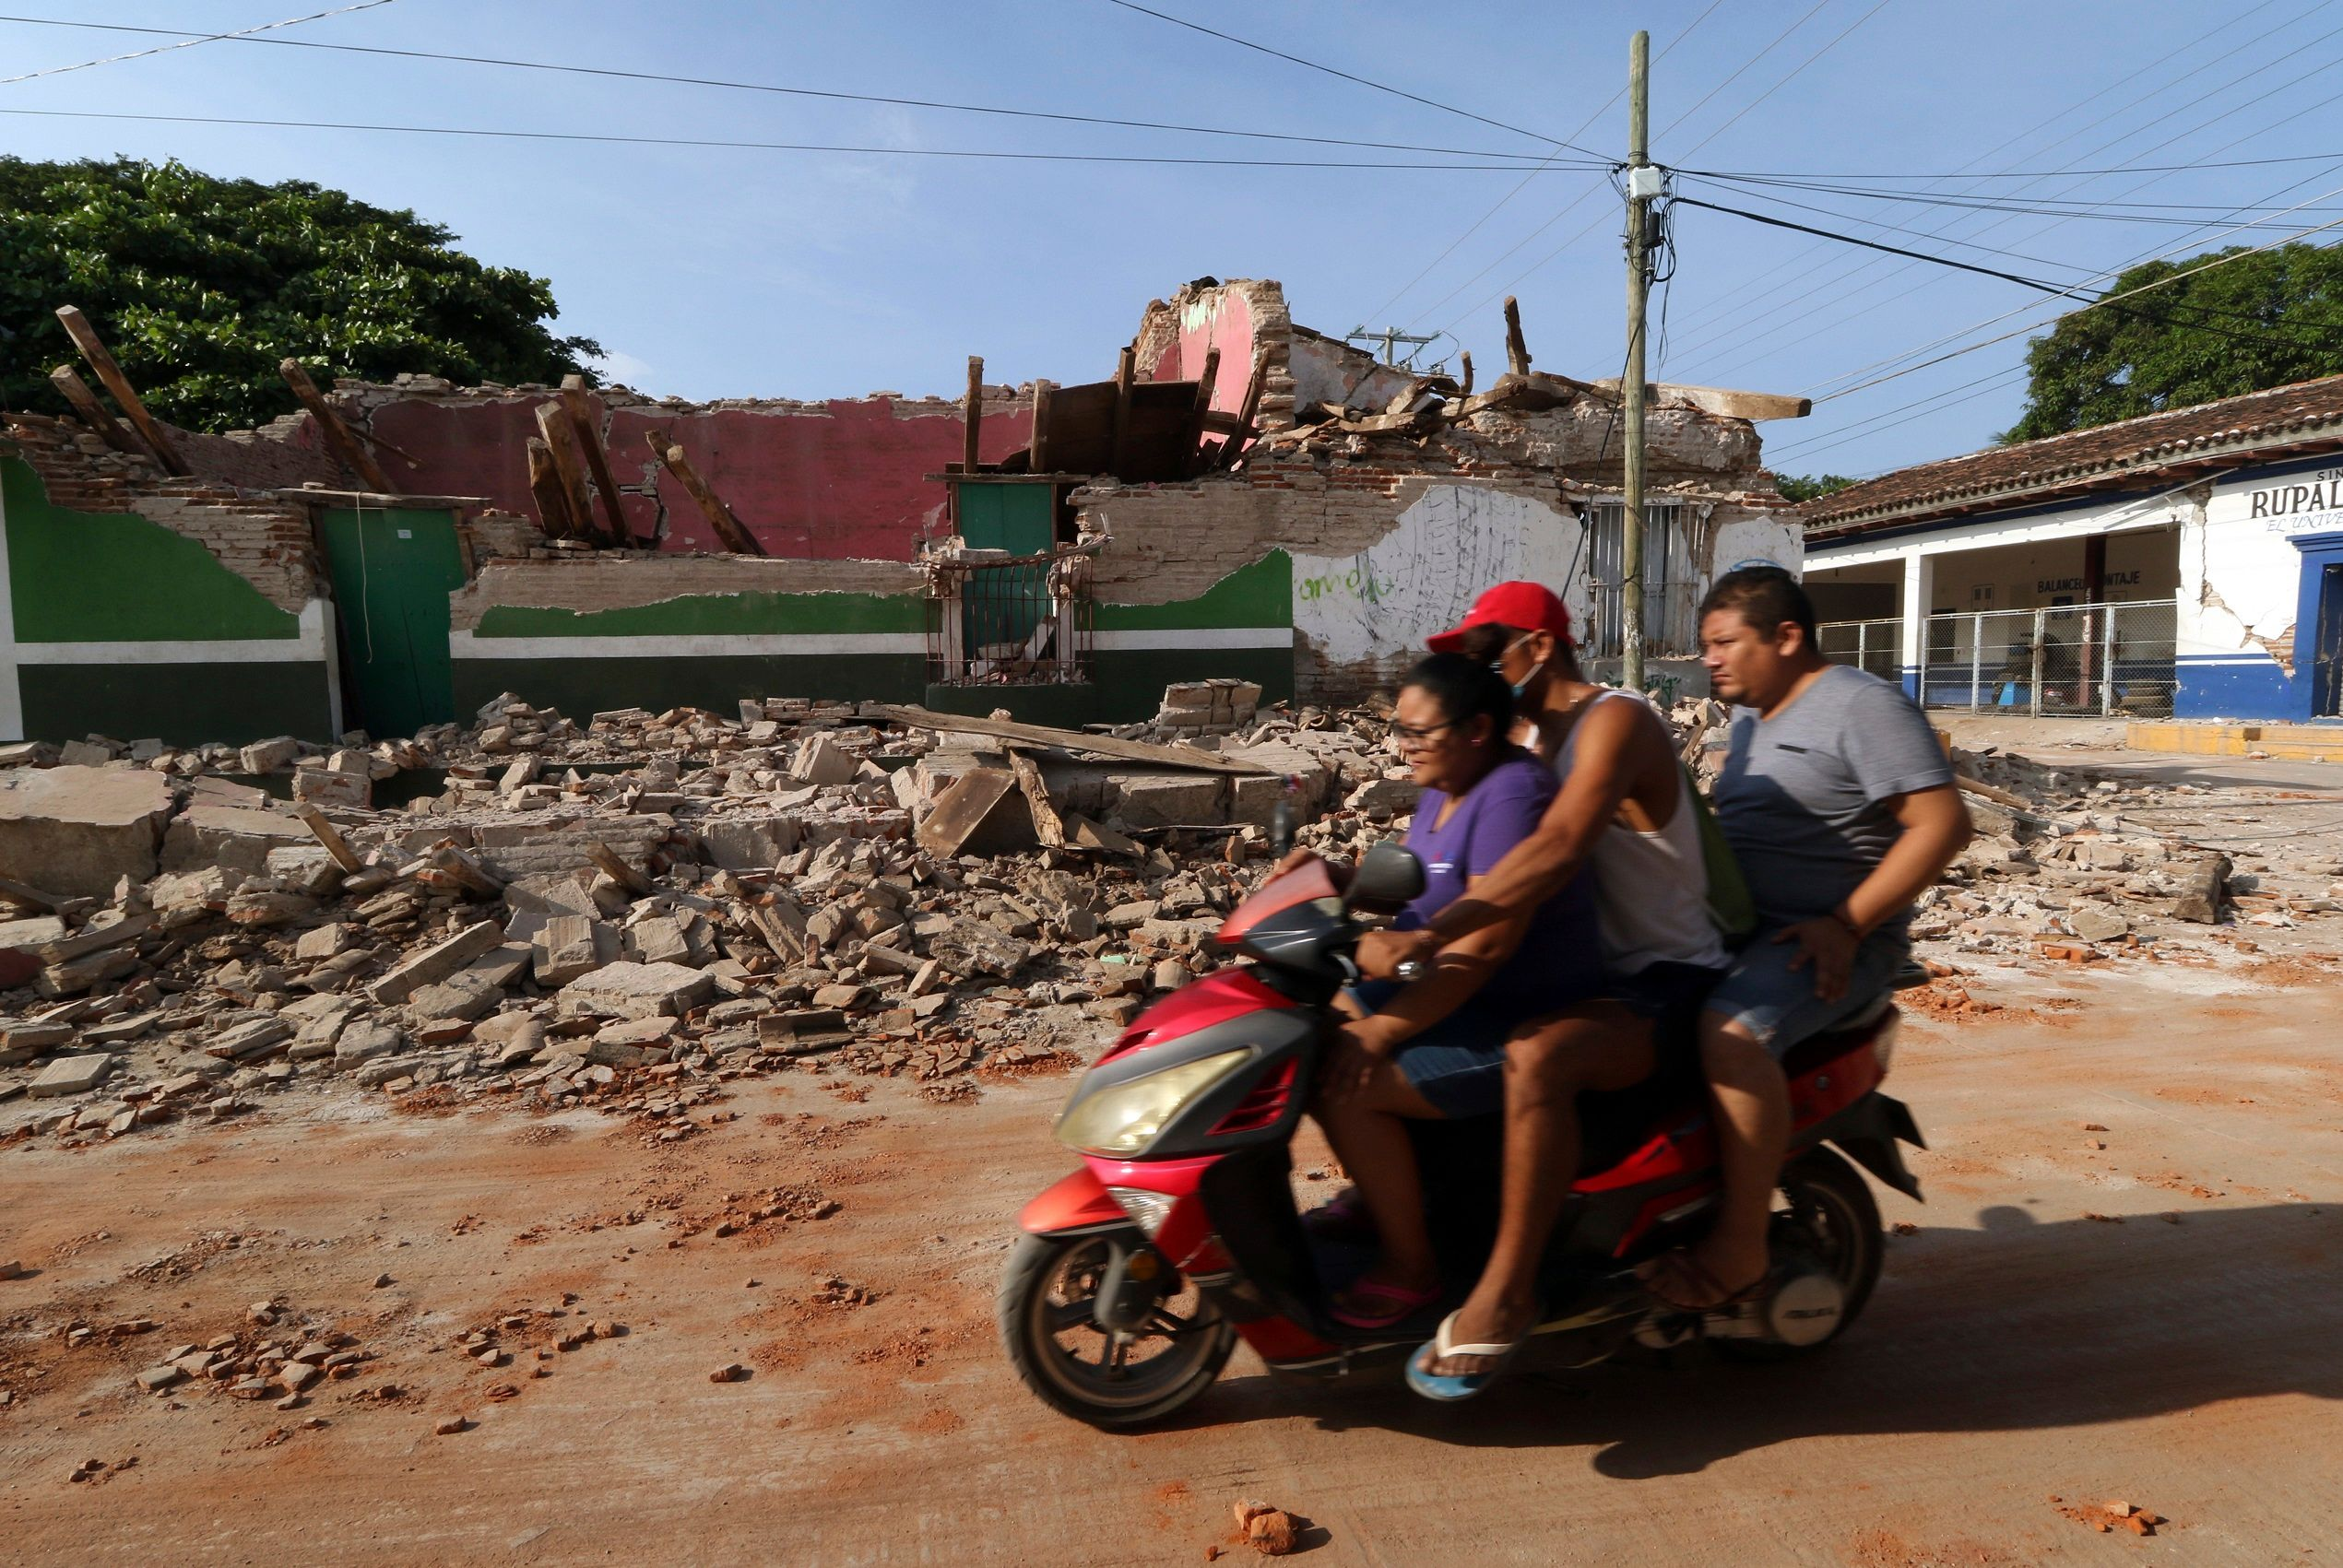 8.2 quake jolts Mexico triggers Tsunami; 32 killed